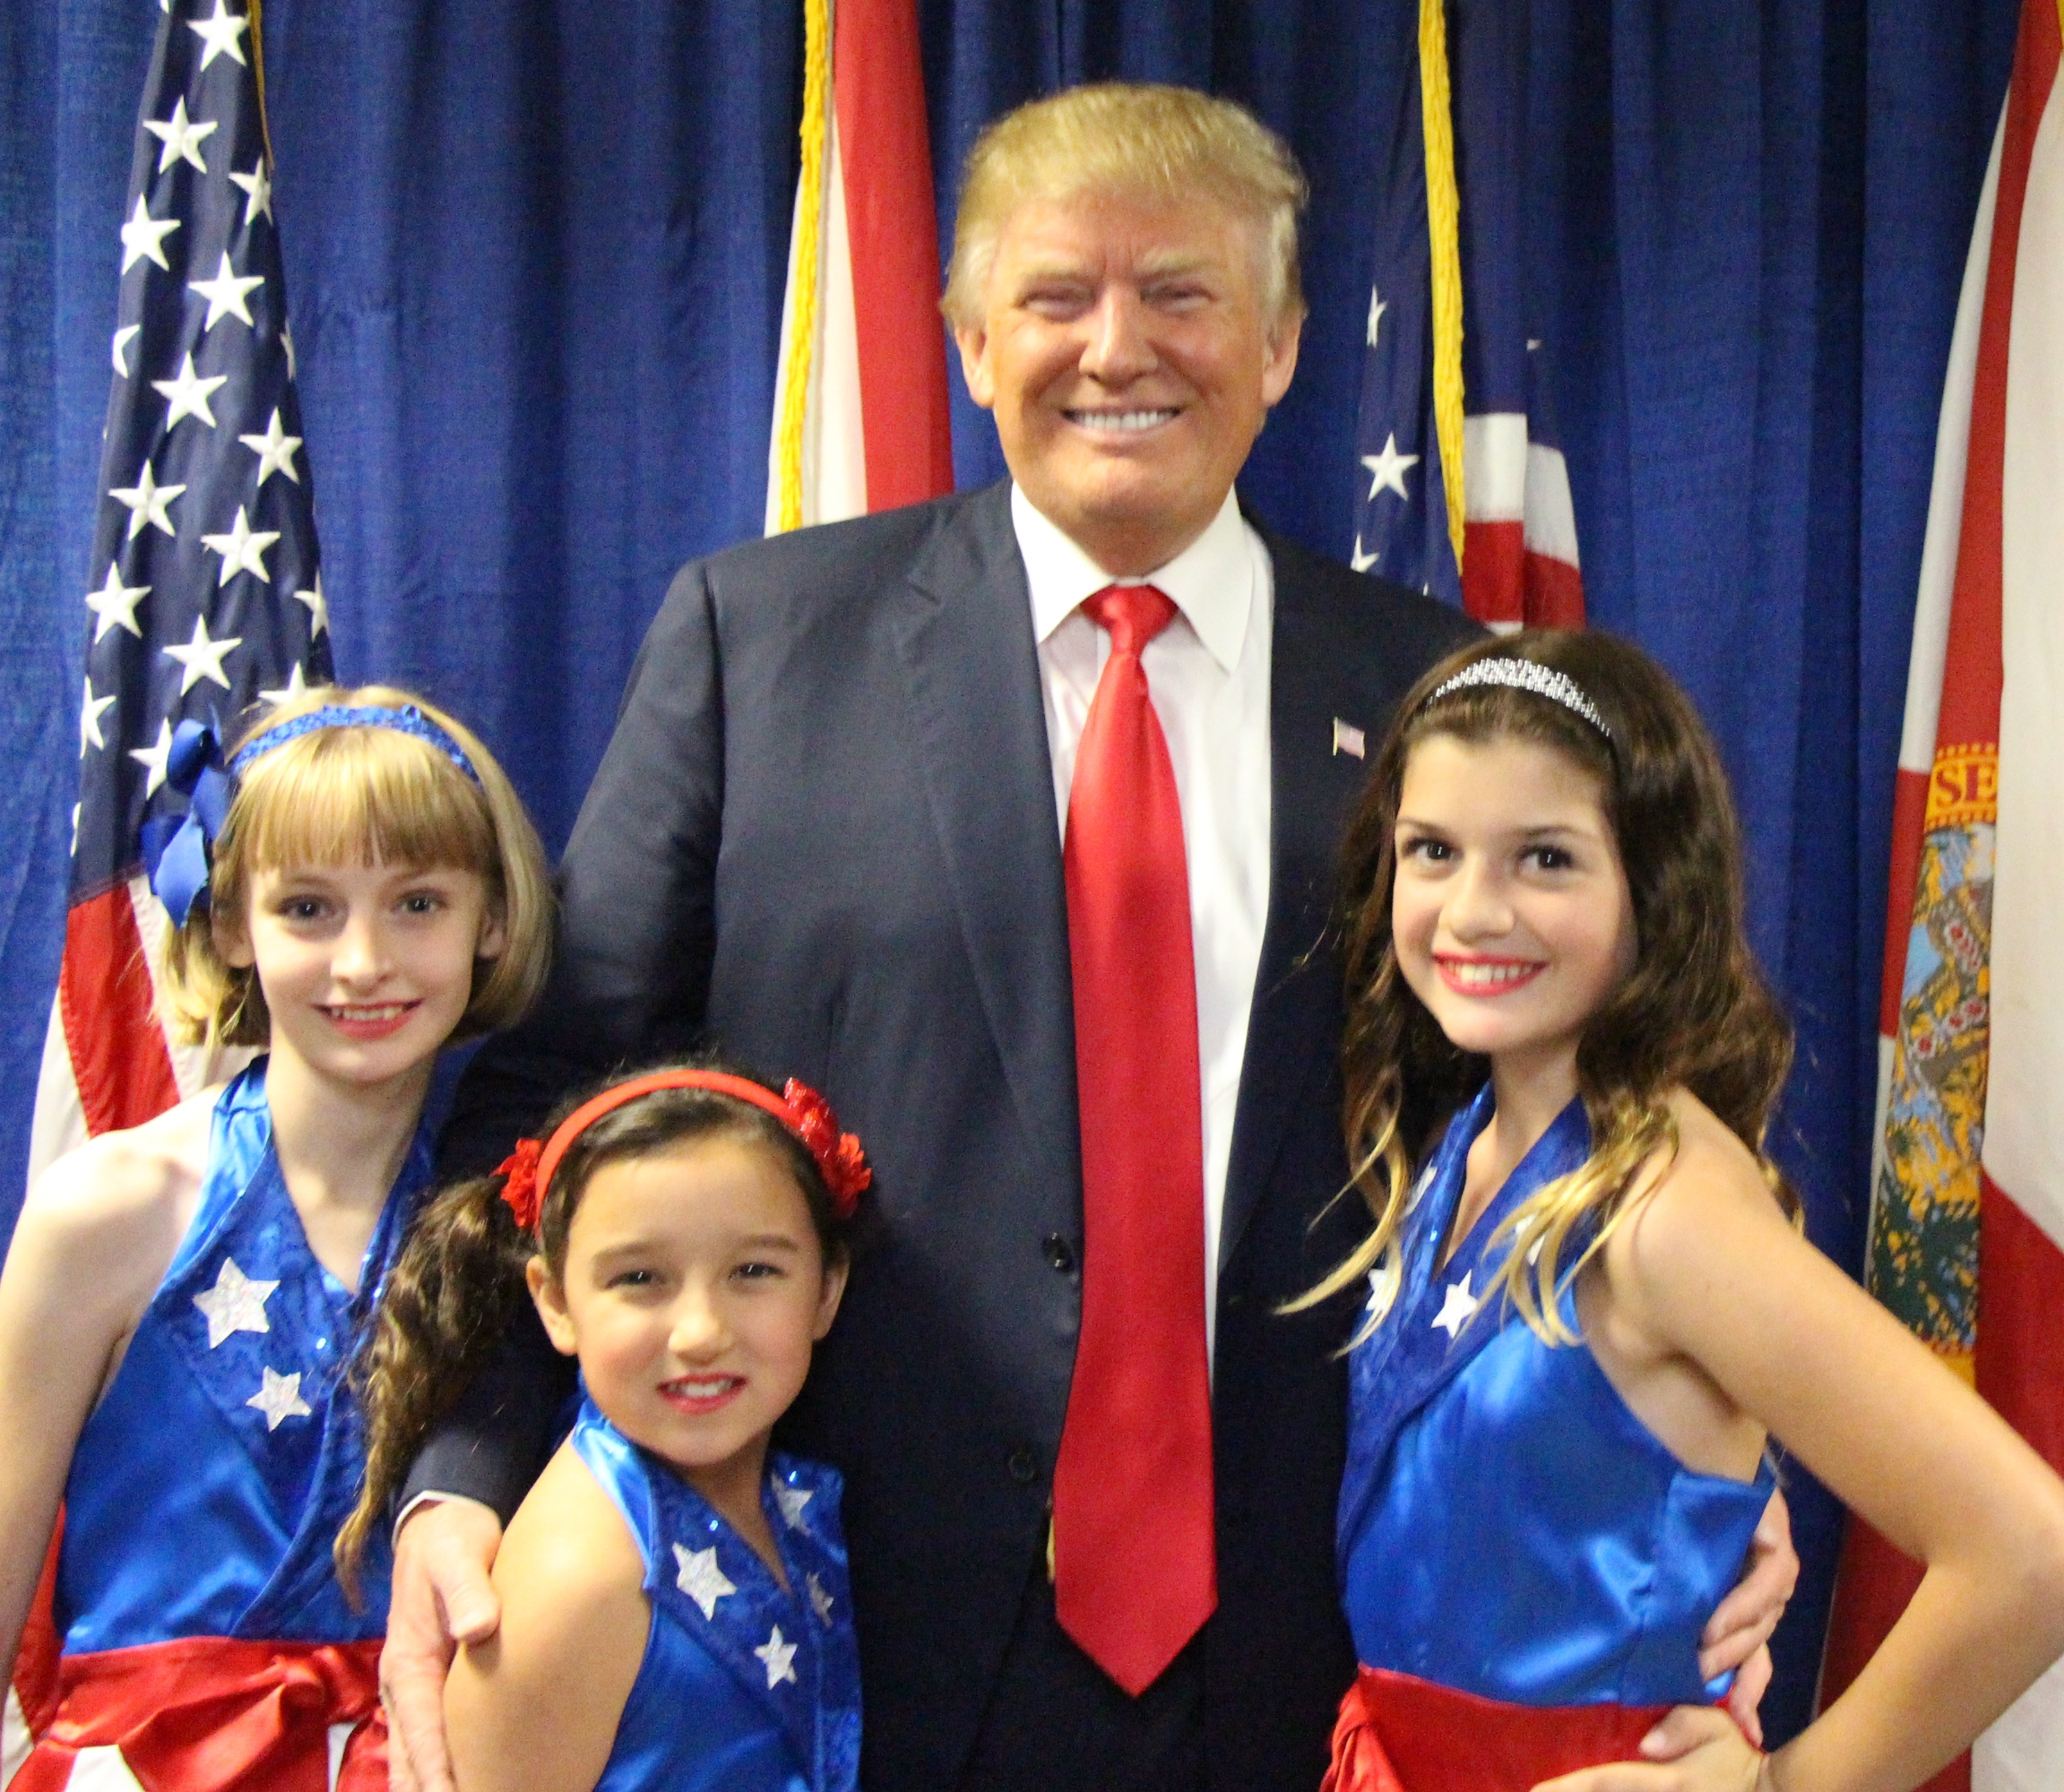 USA Freedom Kids Raising $1Million For Anti-Trump Celebrities